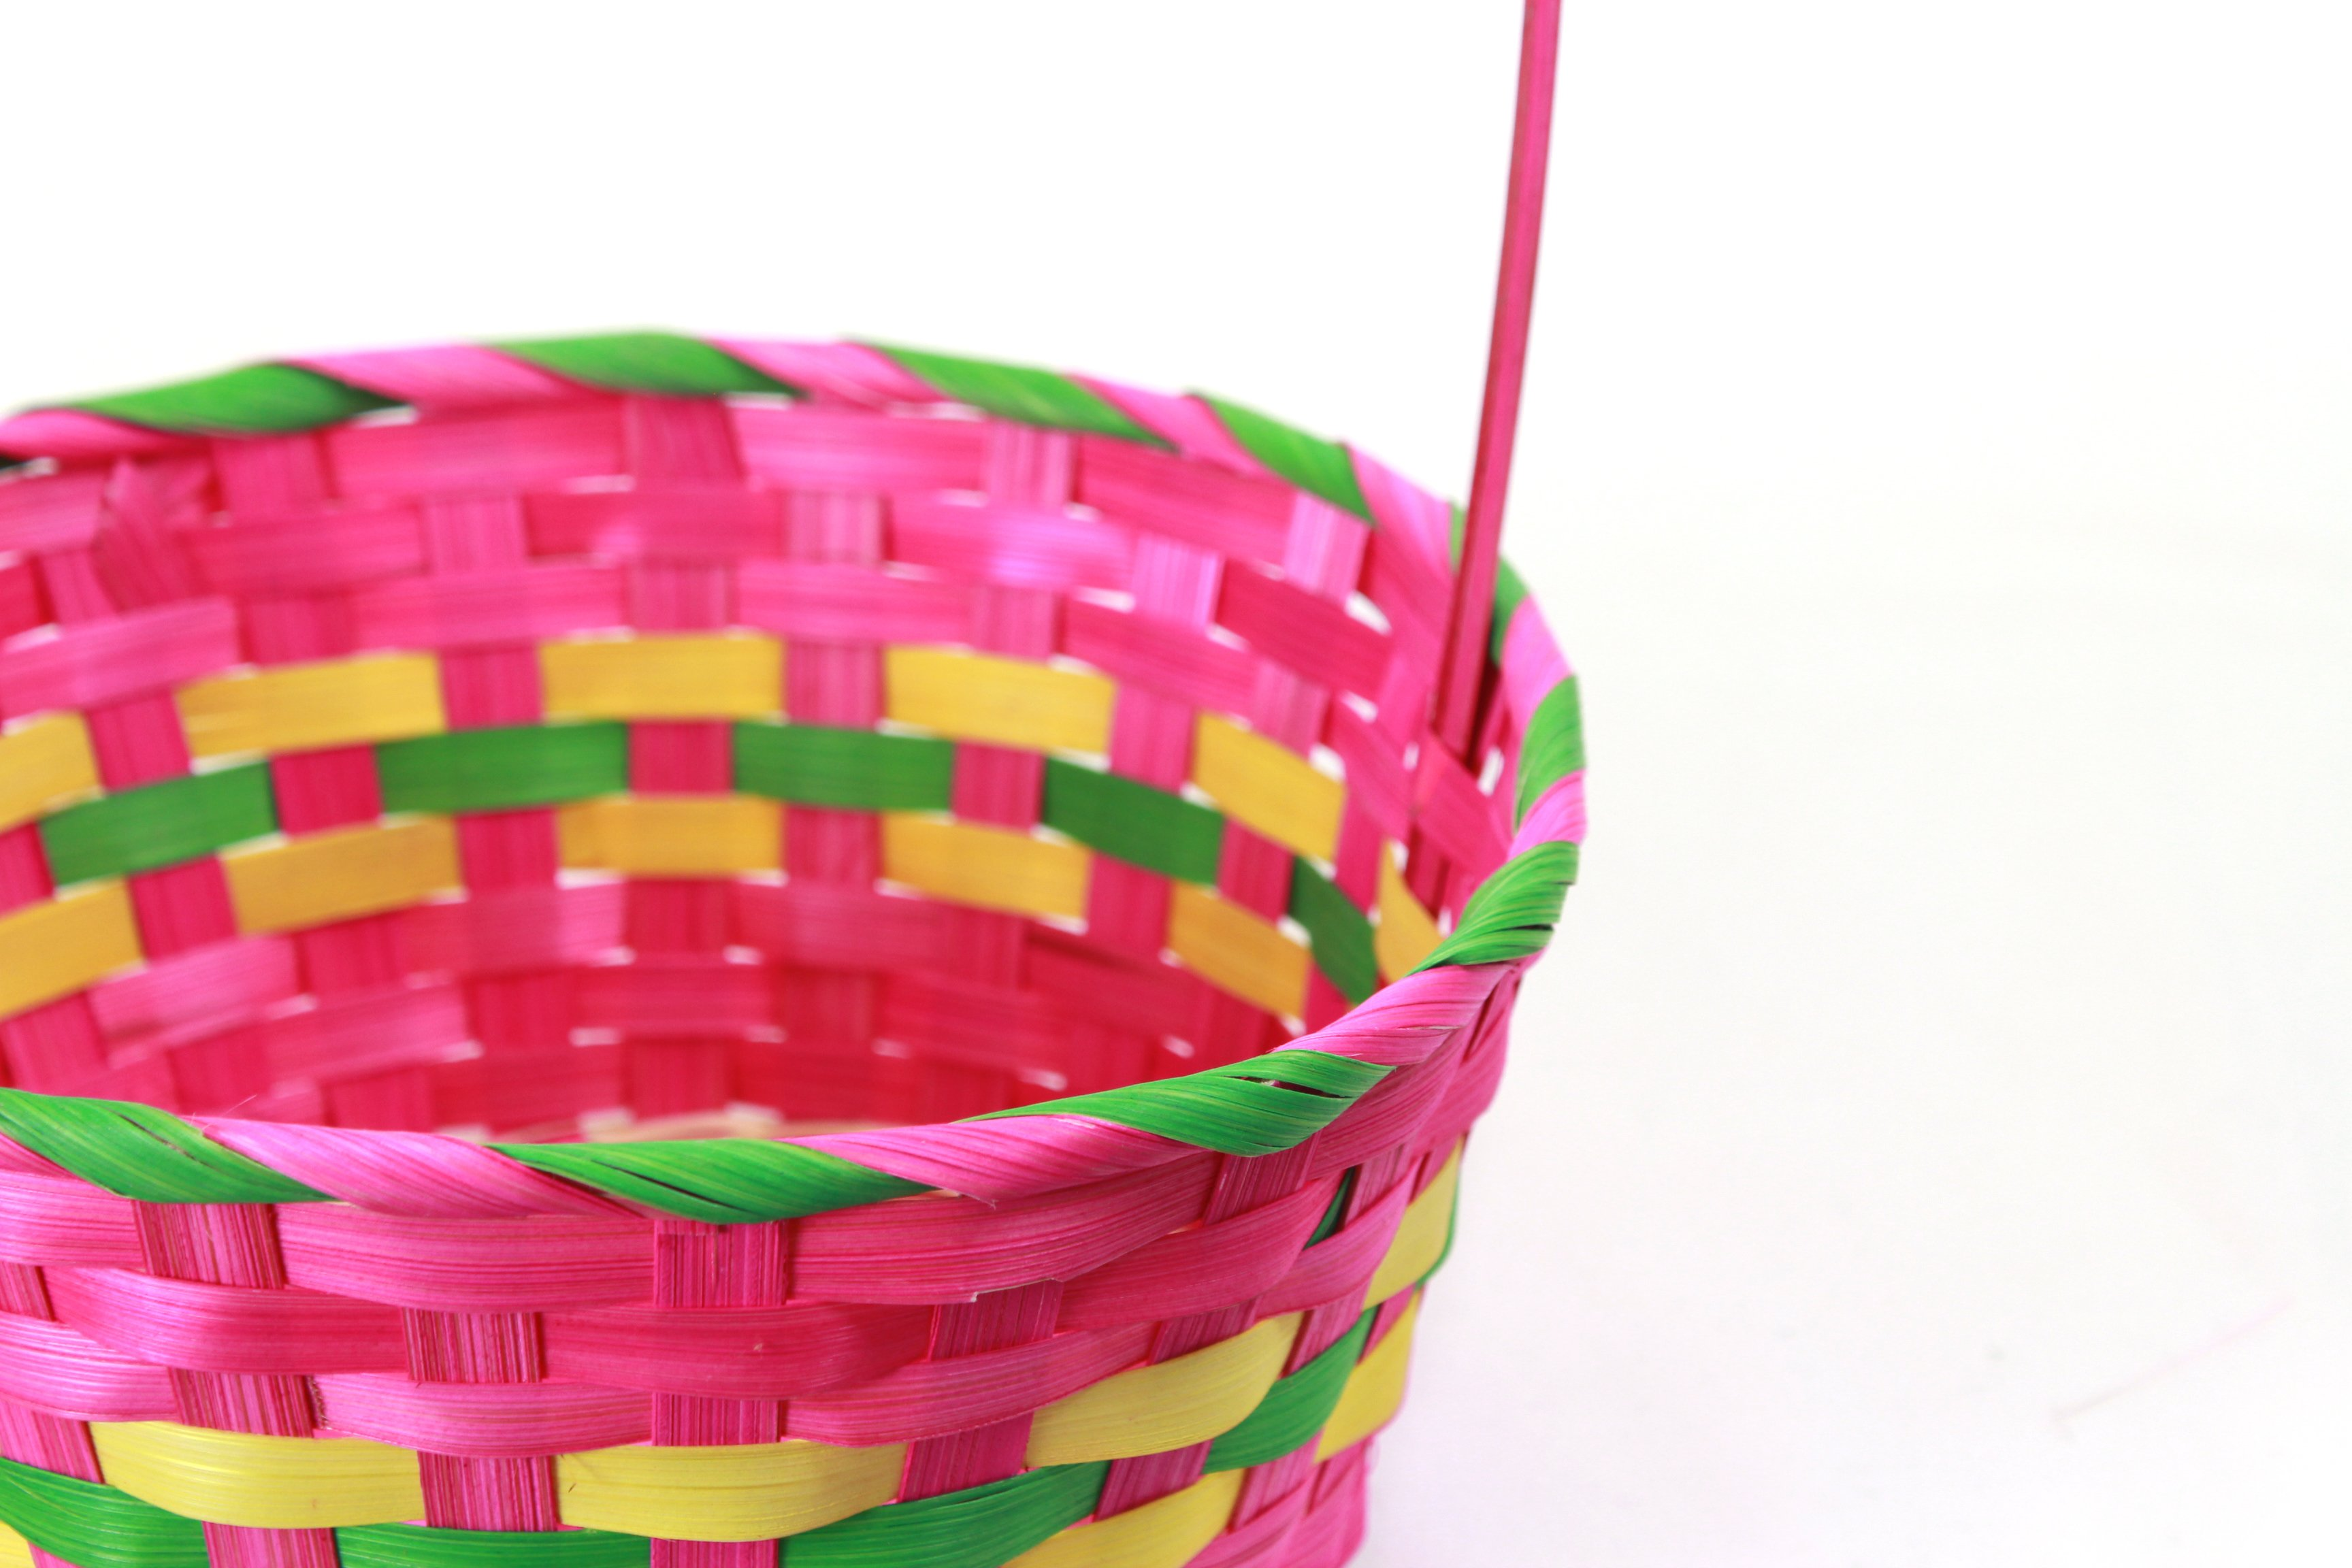 Multi Coloured Round Bamboo Baskets close-up